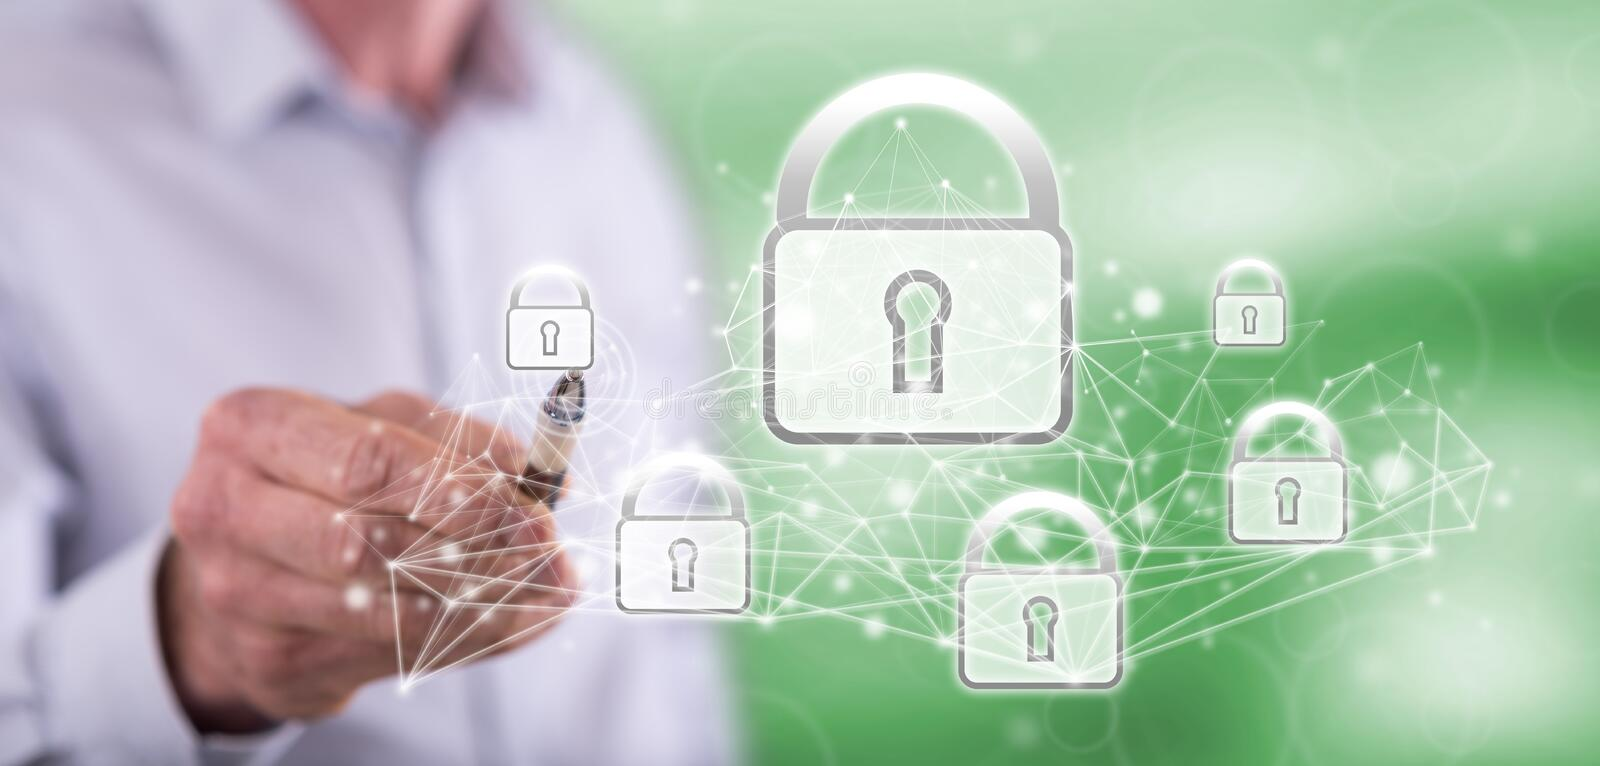 Man touching a network security concept stock photo